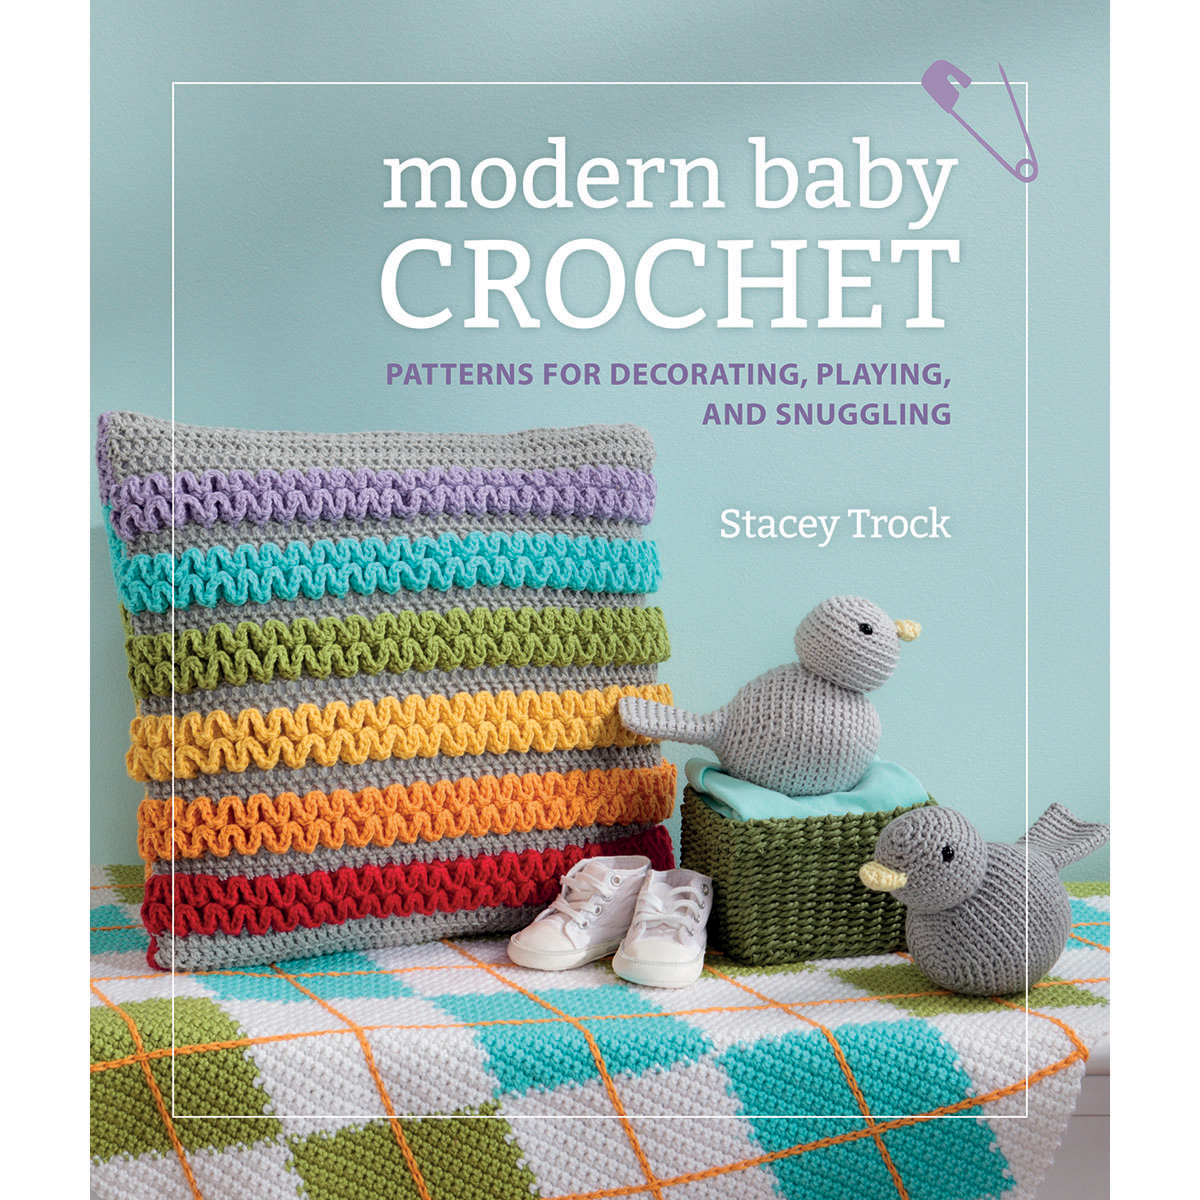 Crochet Patterns And Projects Book : Books & Crochet Books ? Crochet Books & Crochet Patterns ? Crochet ...